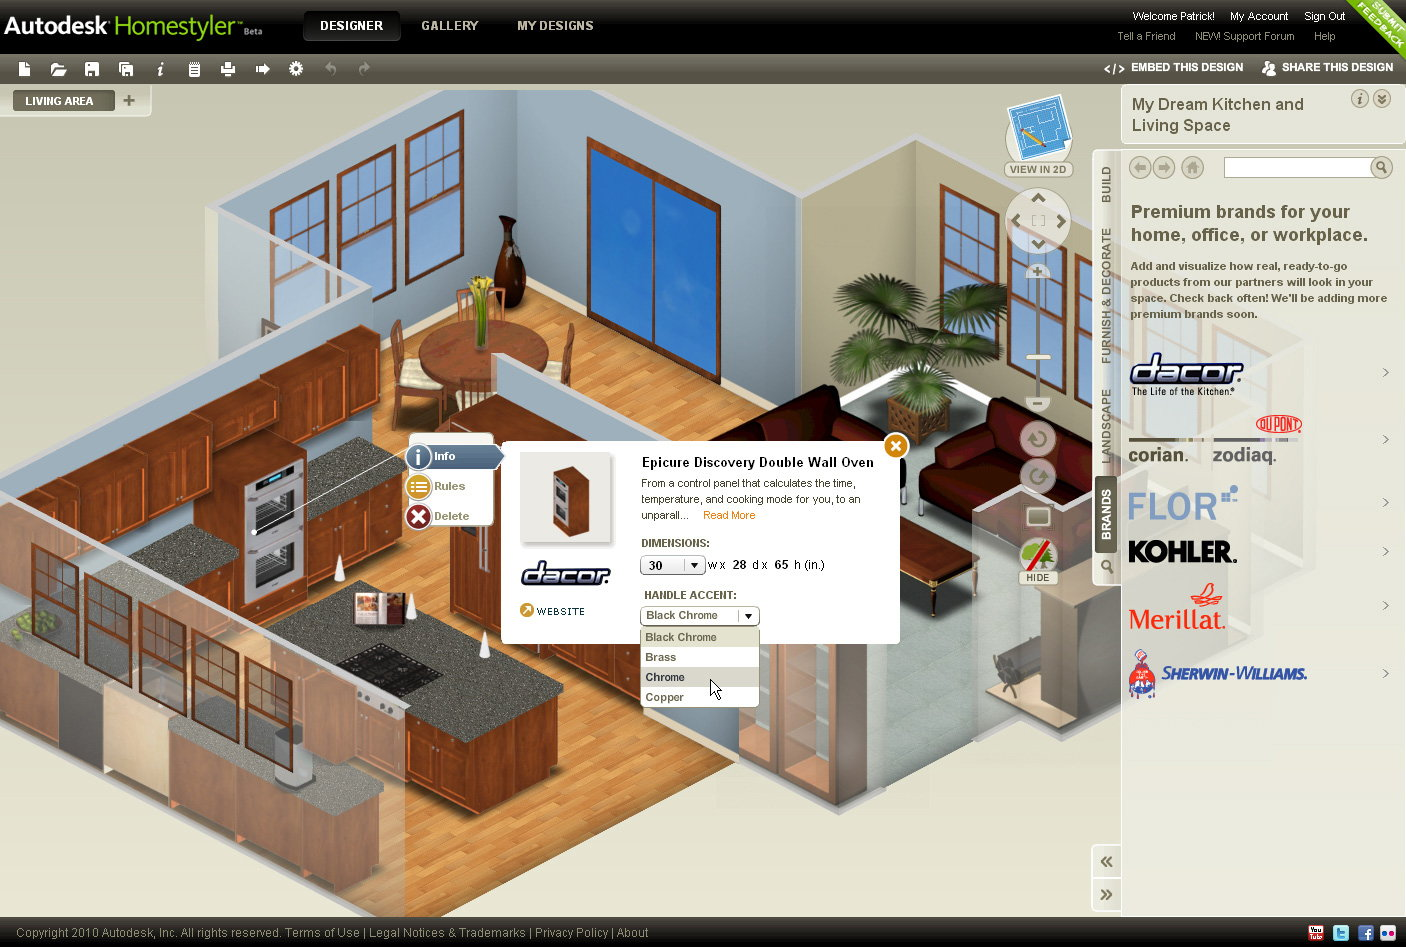 Attractive Autodesk Homestyler: Easy To Use, Free 2D And 3D Online Home Design Software